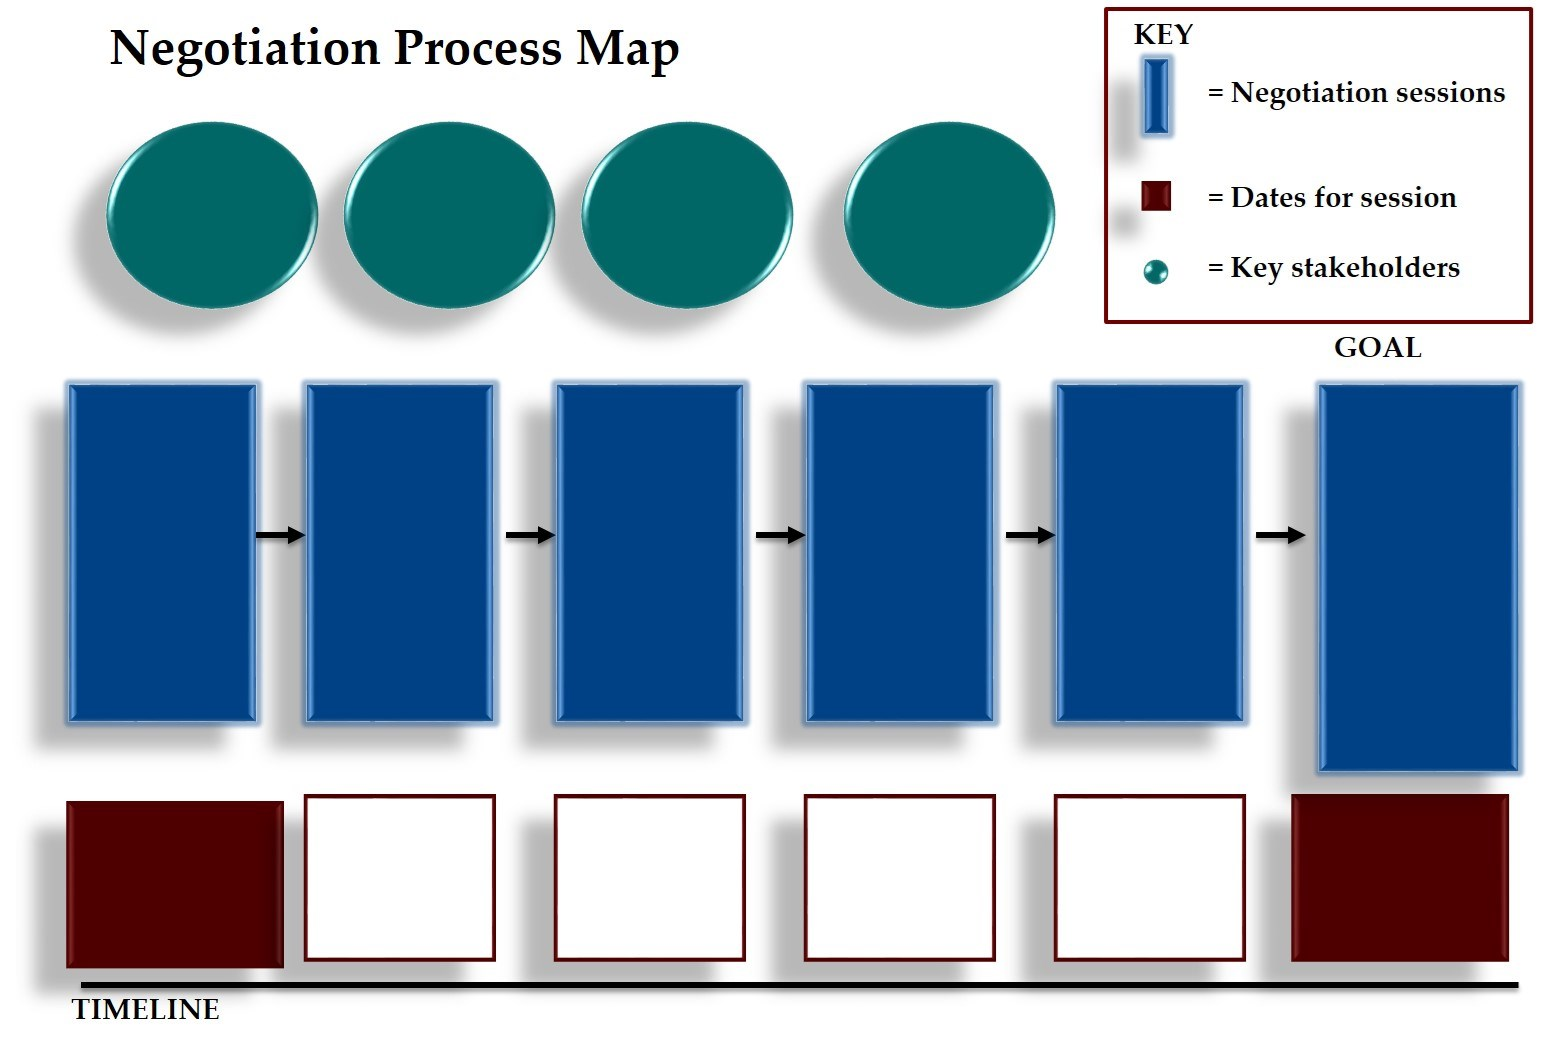 Ki ThoughtBridge's Negotiation Process Map